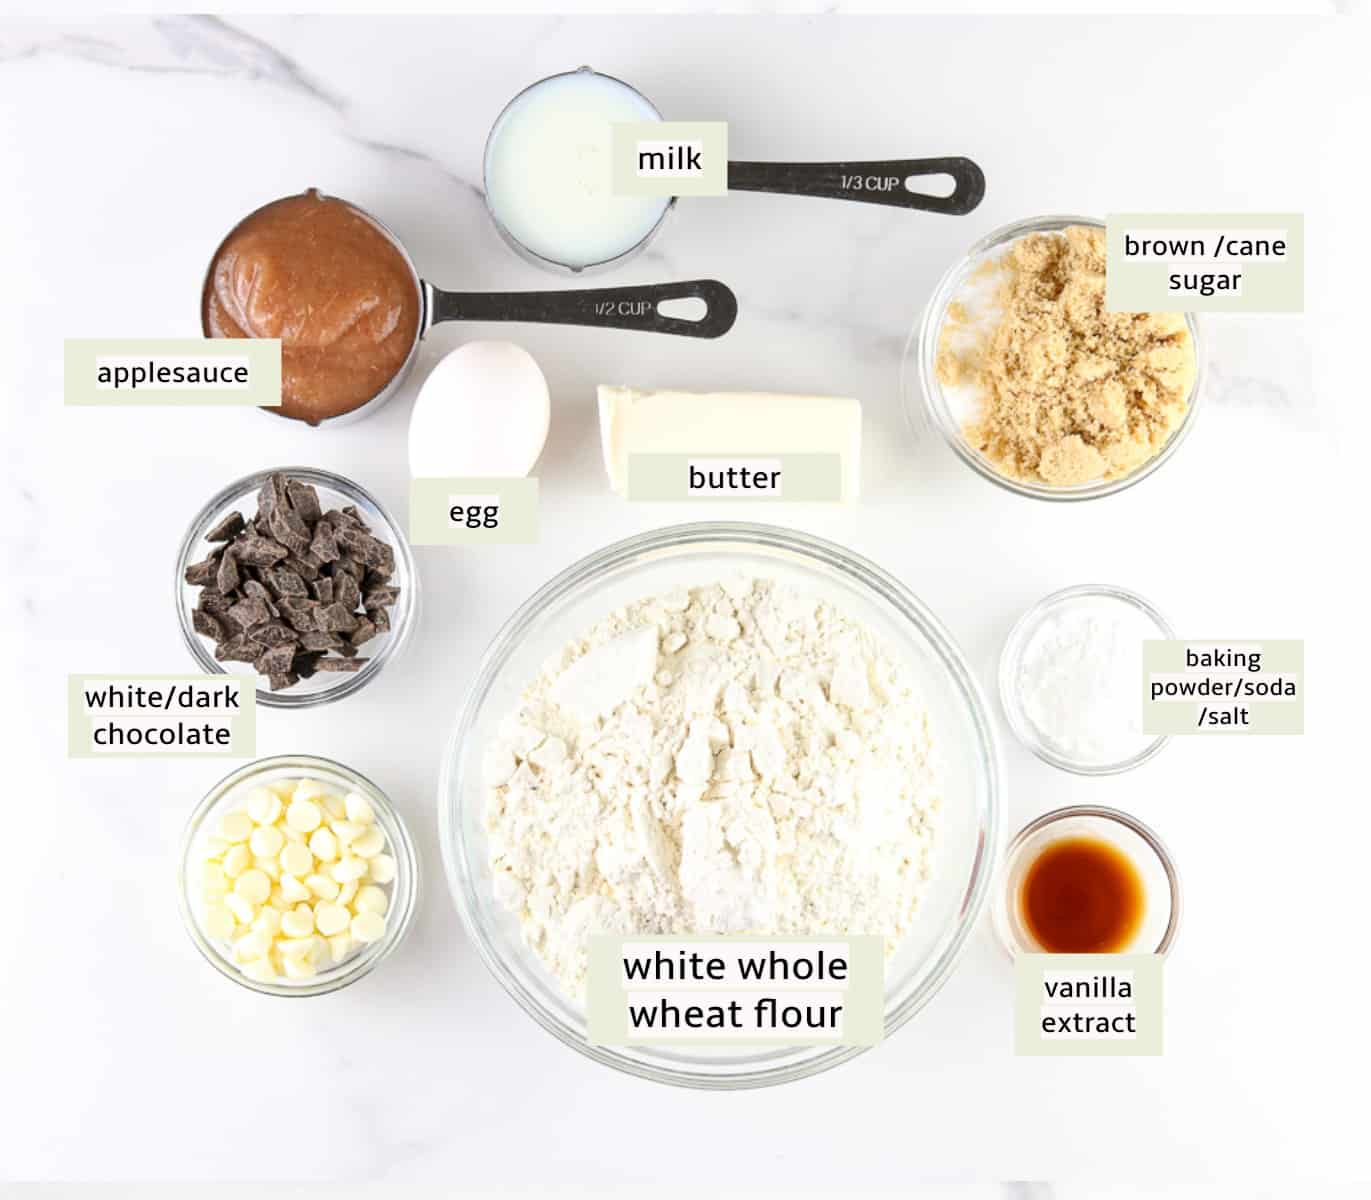 Image of ingredients to make cookie dough bars.